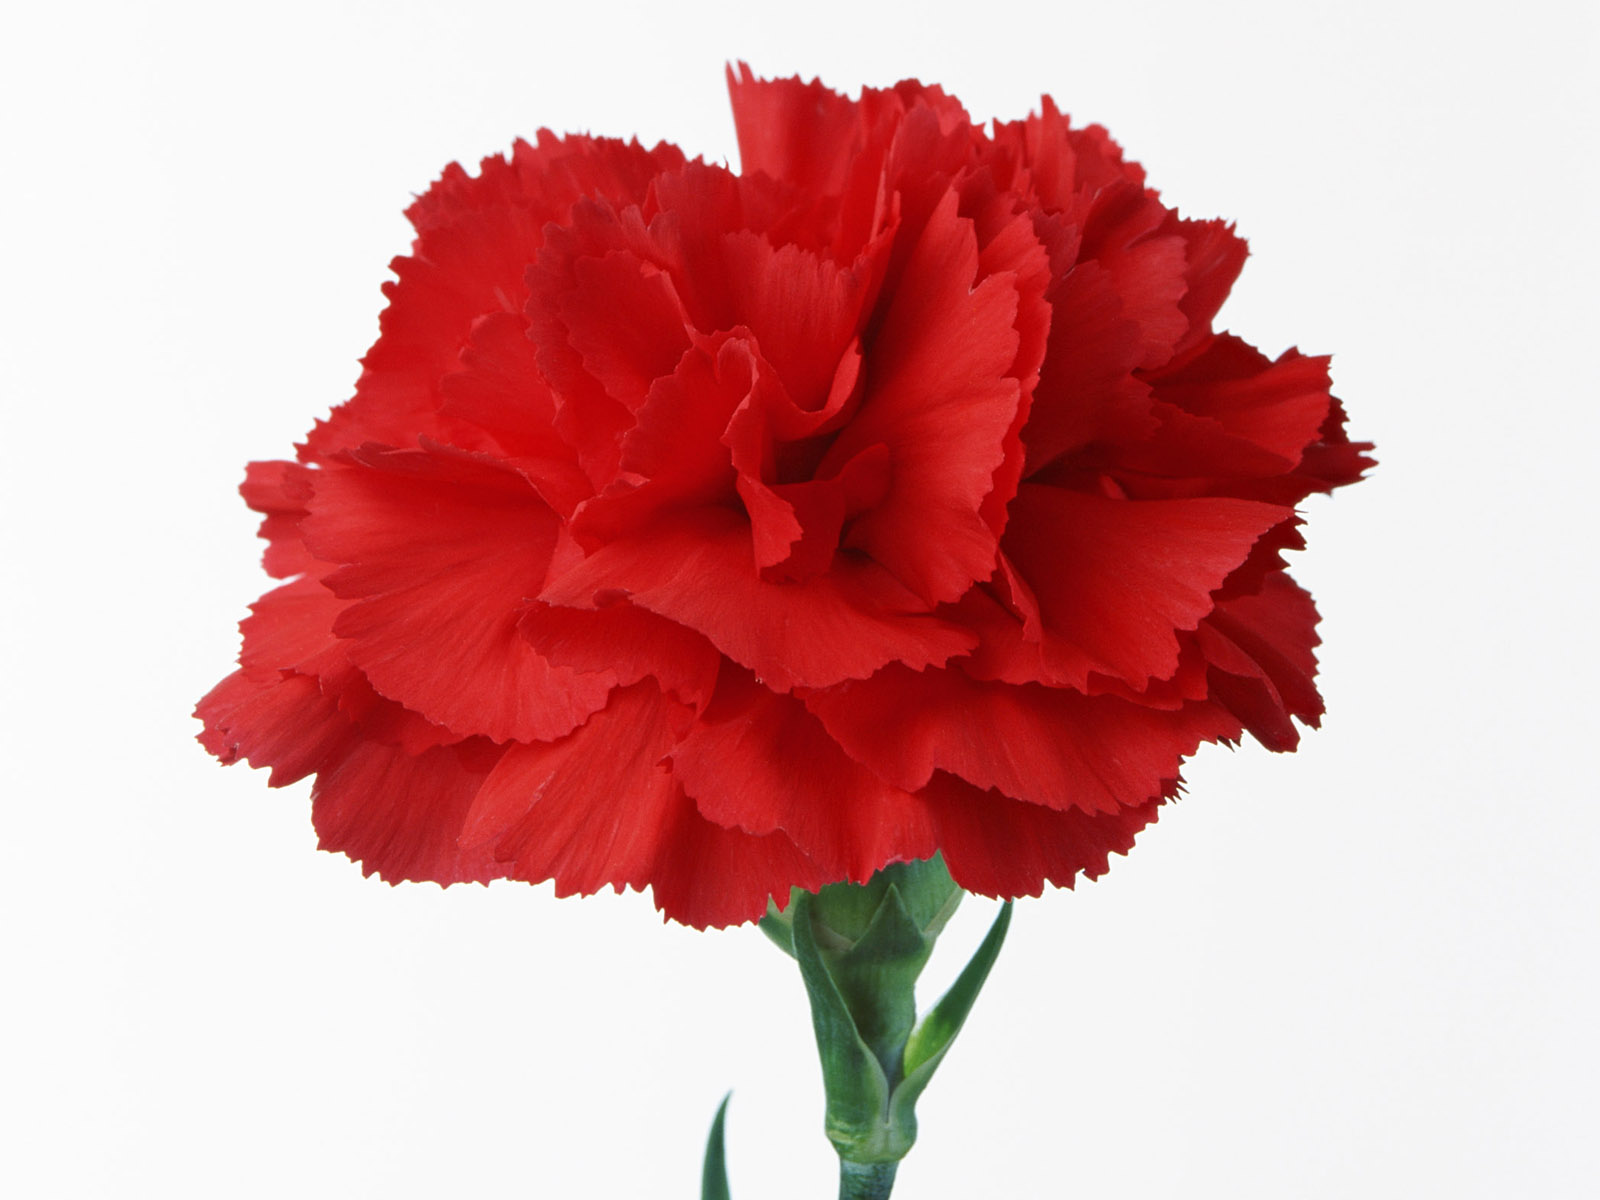 Carnation flowers 3752